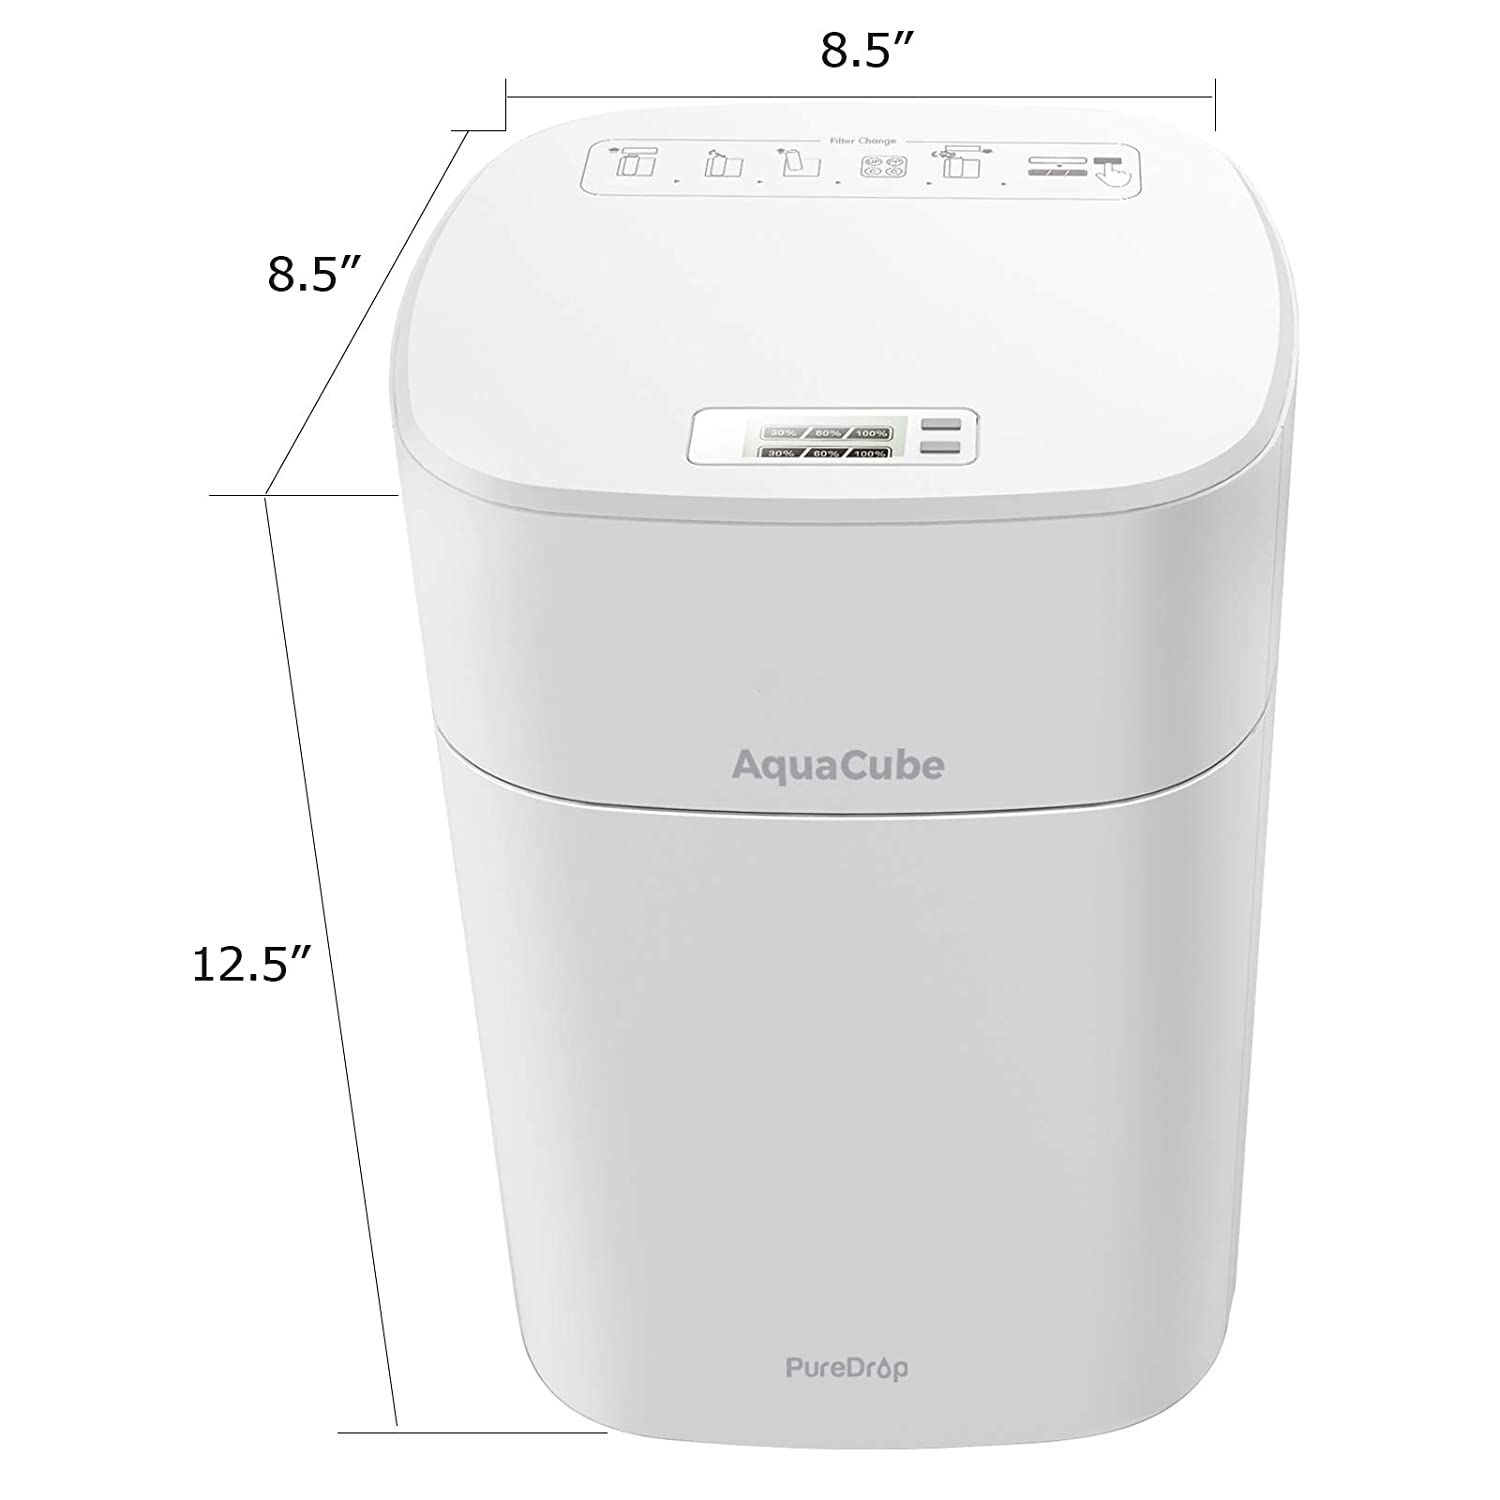 Refrigerator and RV PureDrop CUW4 Aquacube 4-Stage Compact High Efficiency Multi-Purpose Drinking Water Filter System for Sink Removes Bacteria Lead Giardia Arsenic and Much More